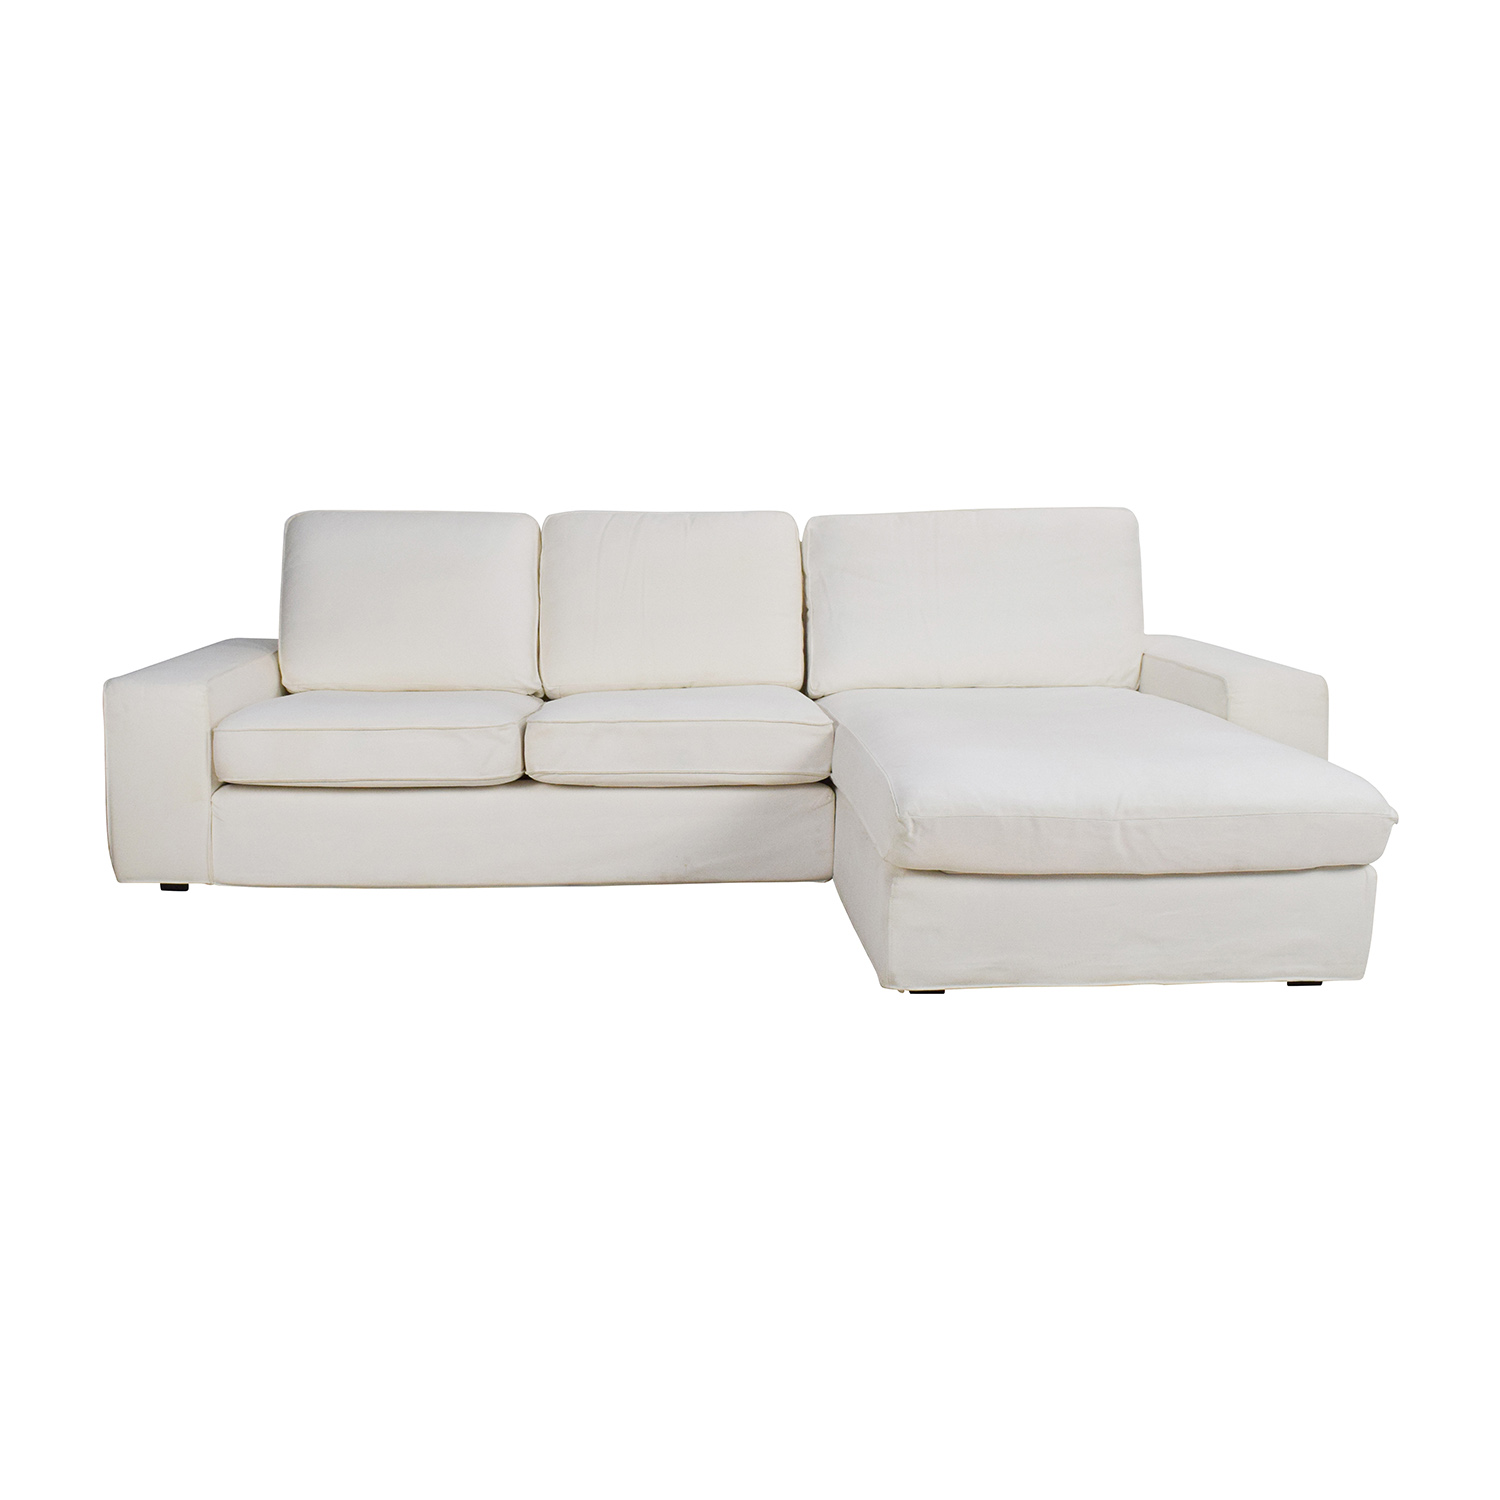 Ikea Kivik Sofa 69 Off Ikea Ikea Kivik Sofa And Chaise Sofas